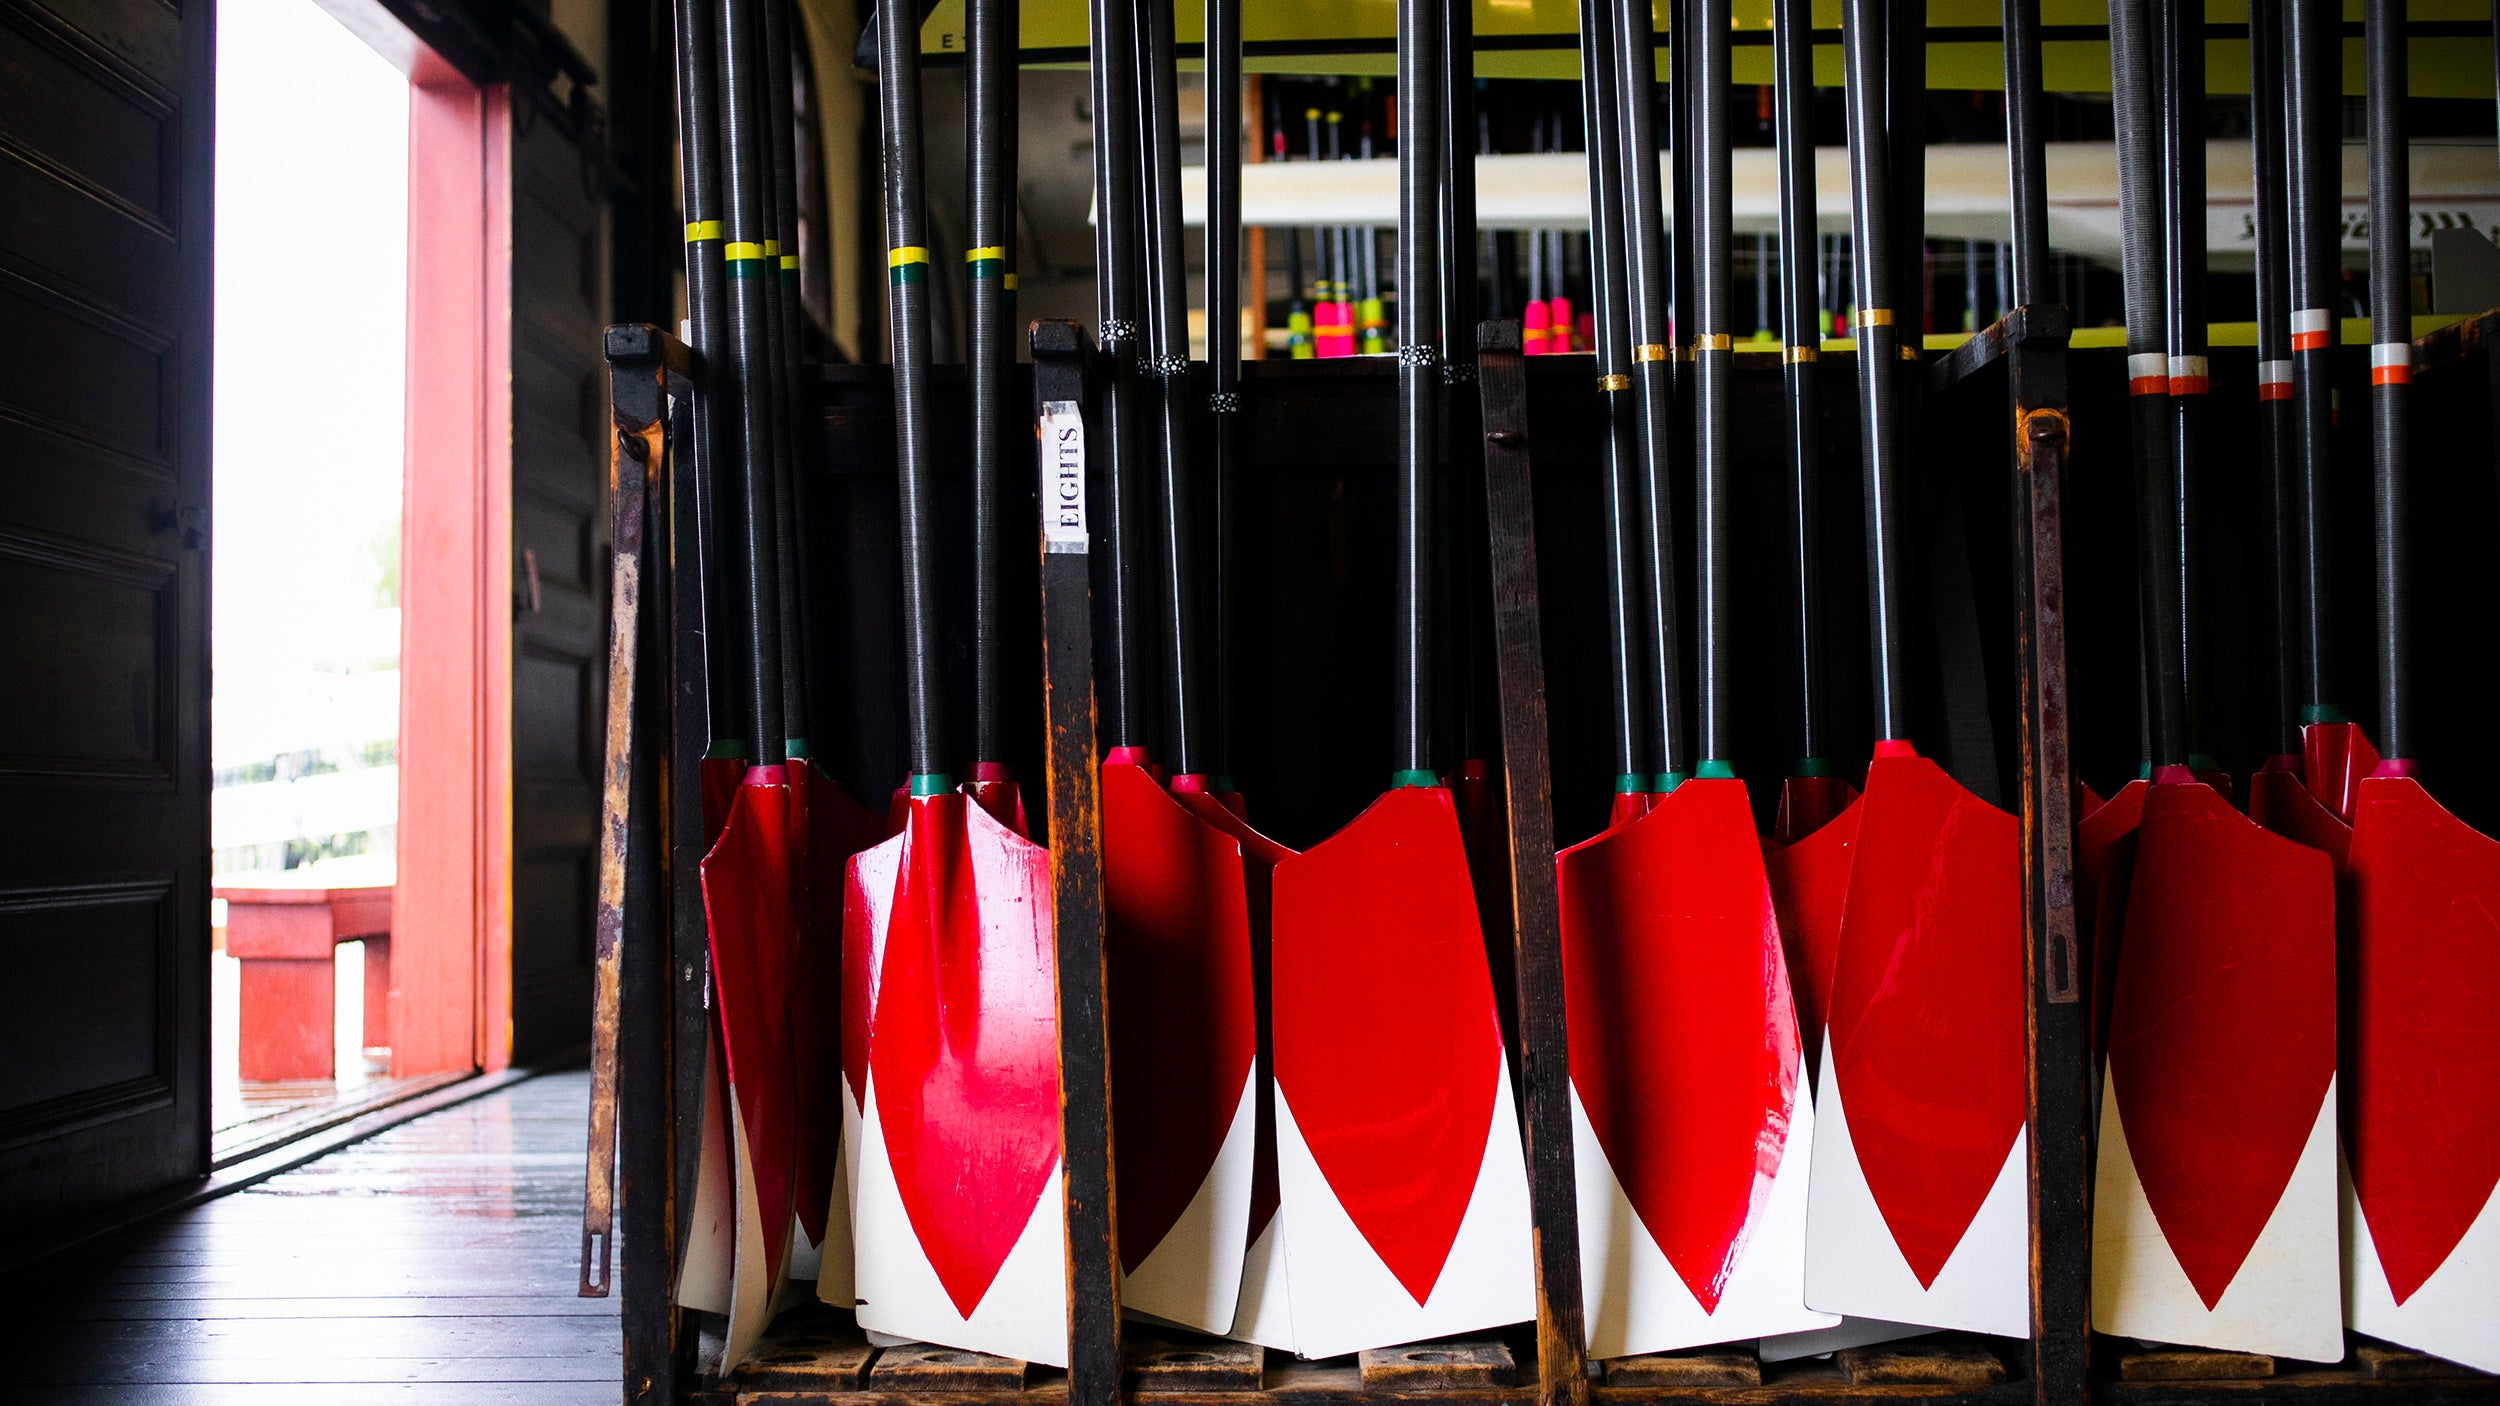 A definitive guide to the 19 designs on the oars of Harvard teams and clubs